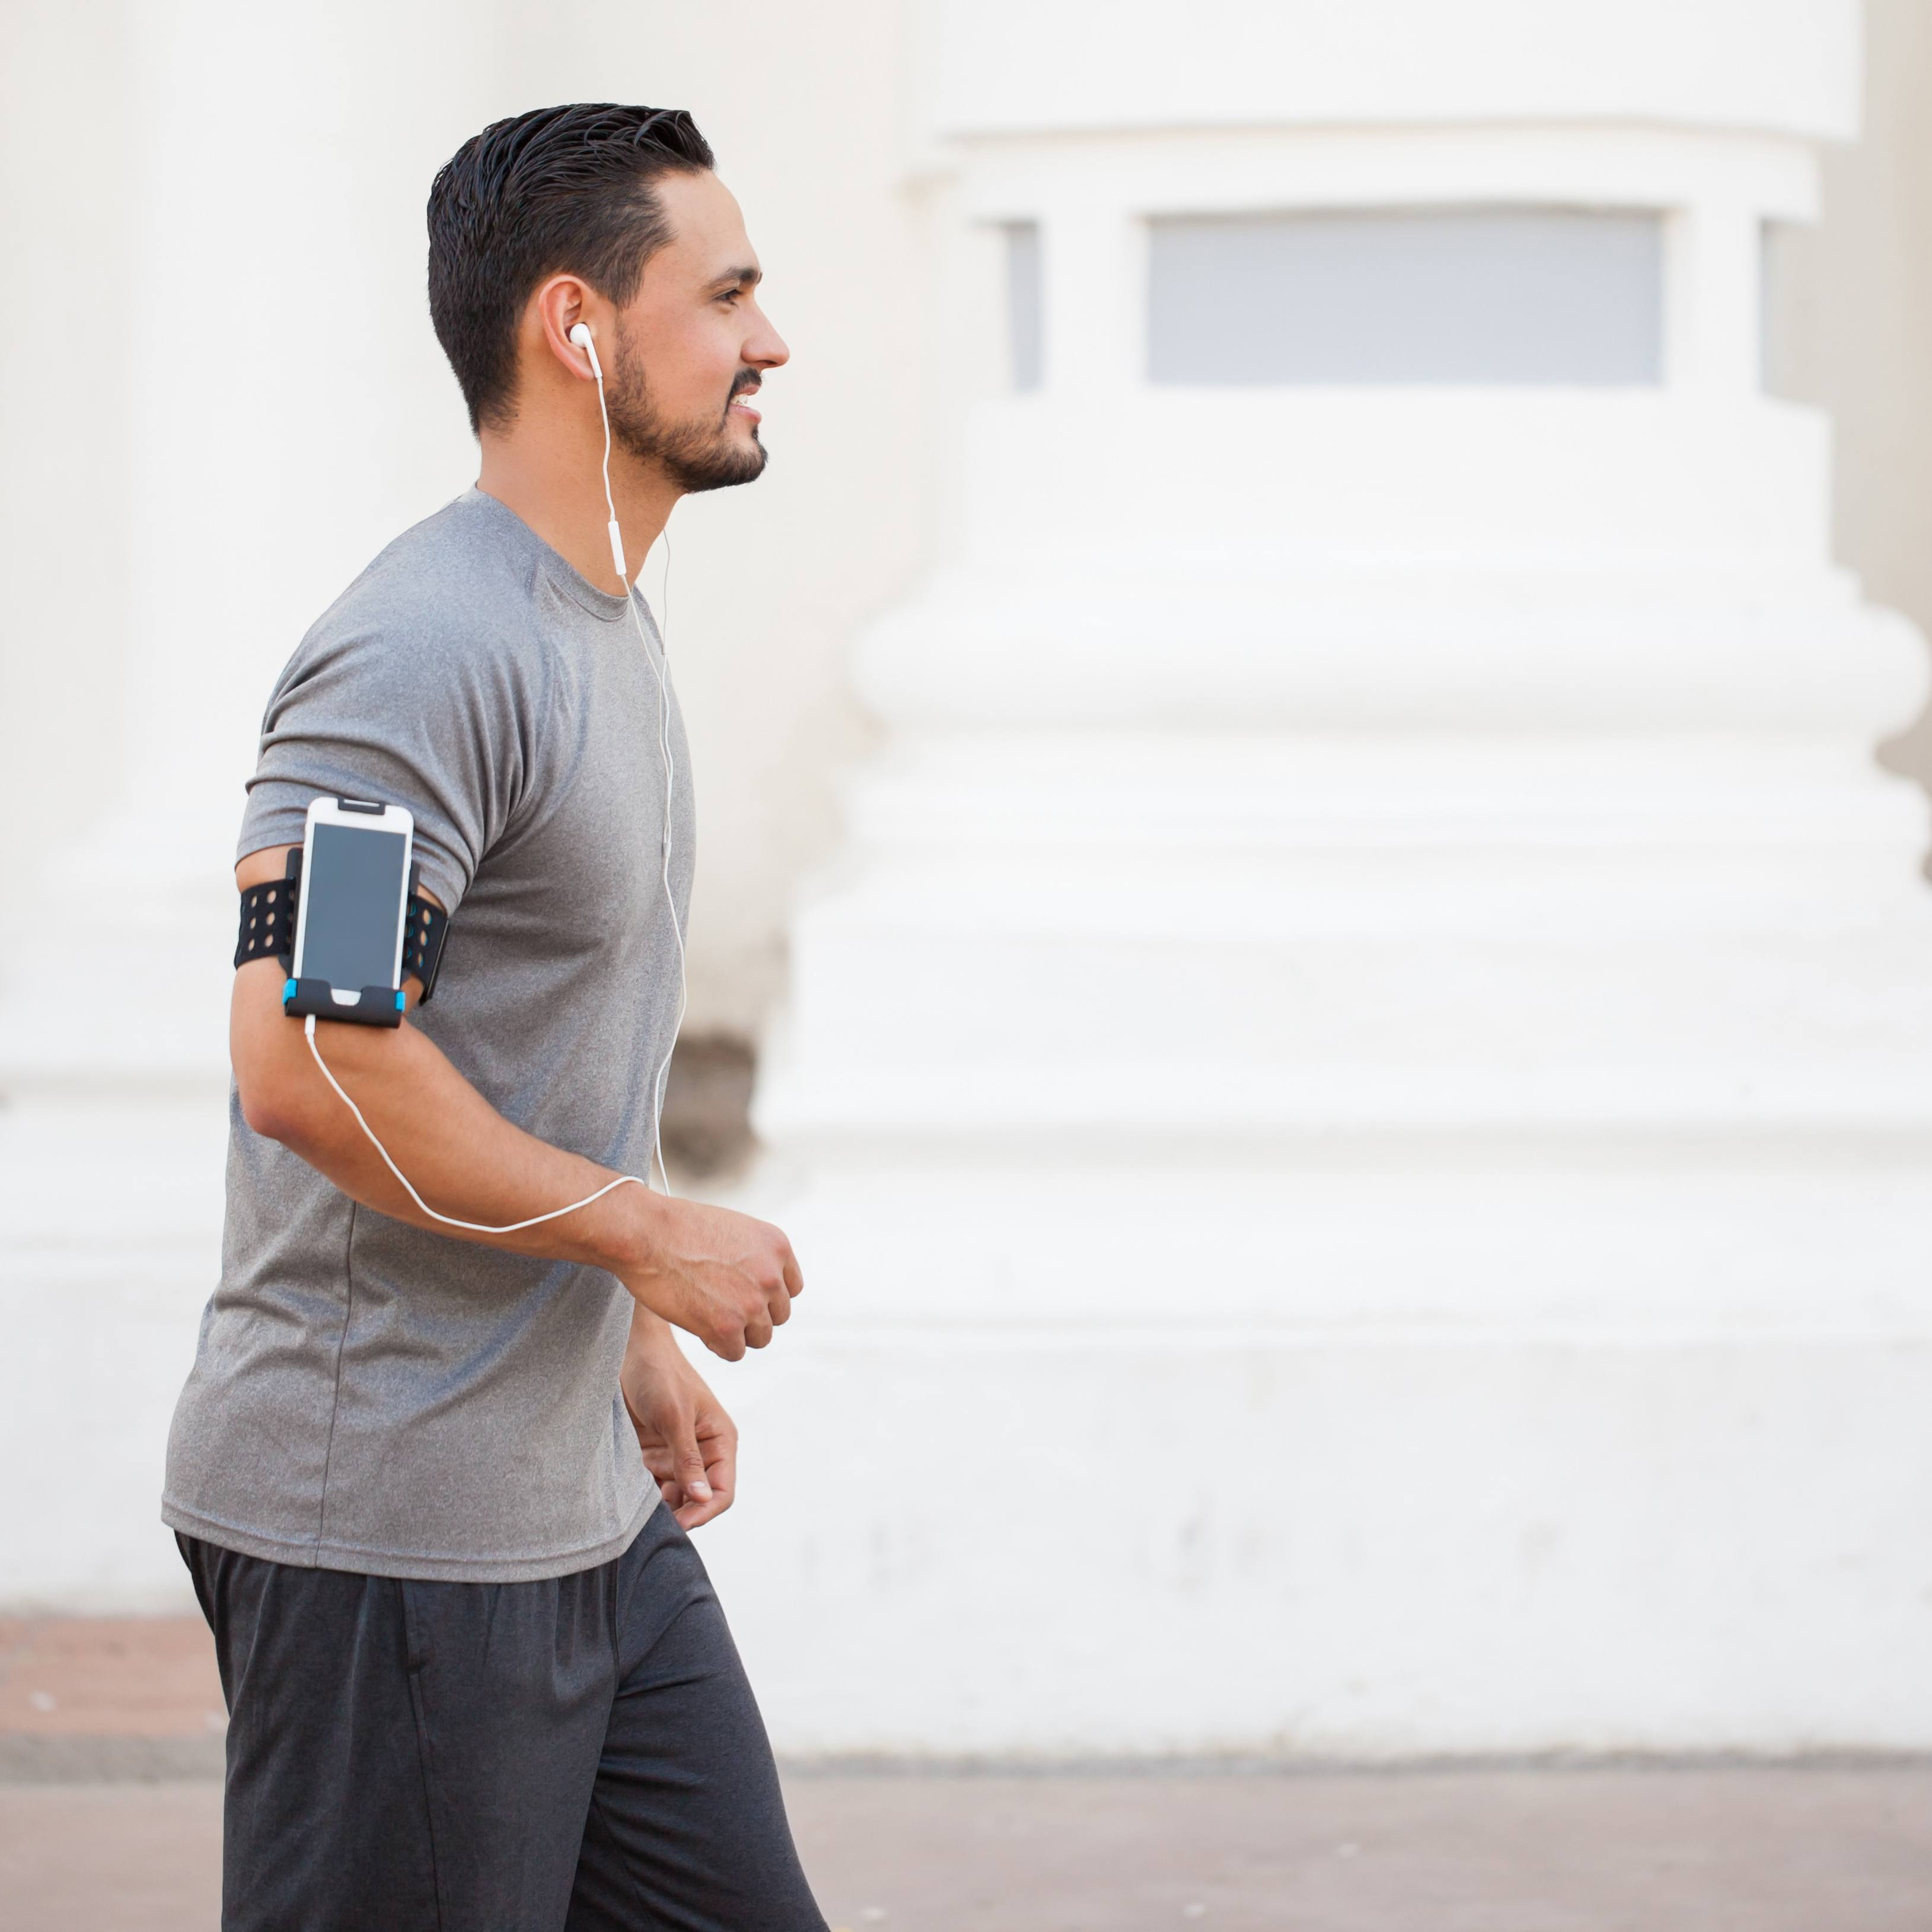 Young man walking in the city while listening to music with earbuds and a smartphone